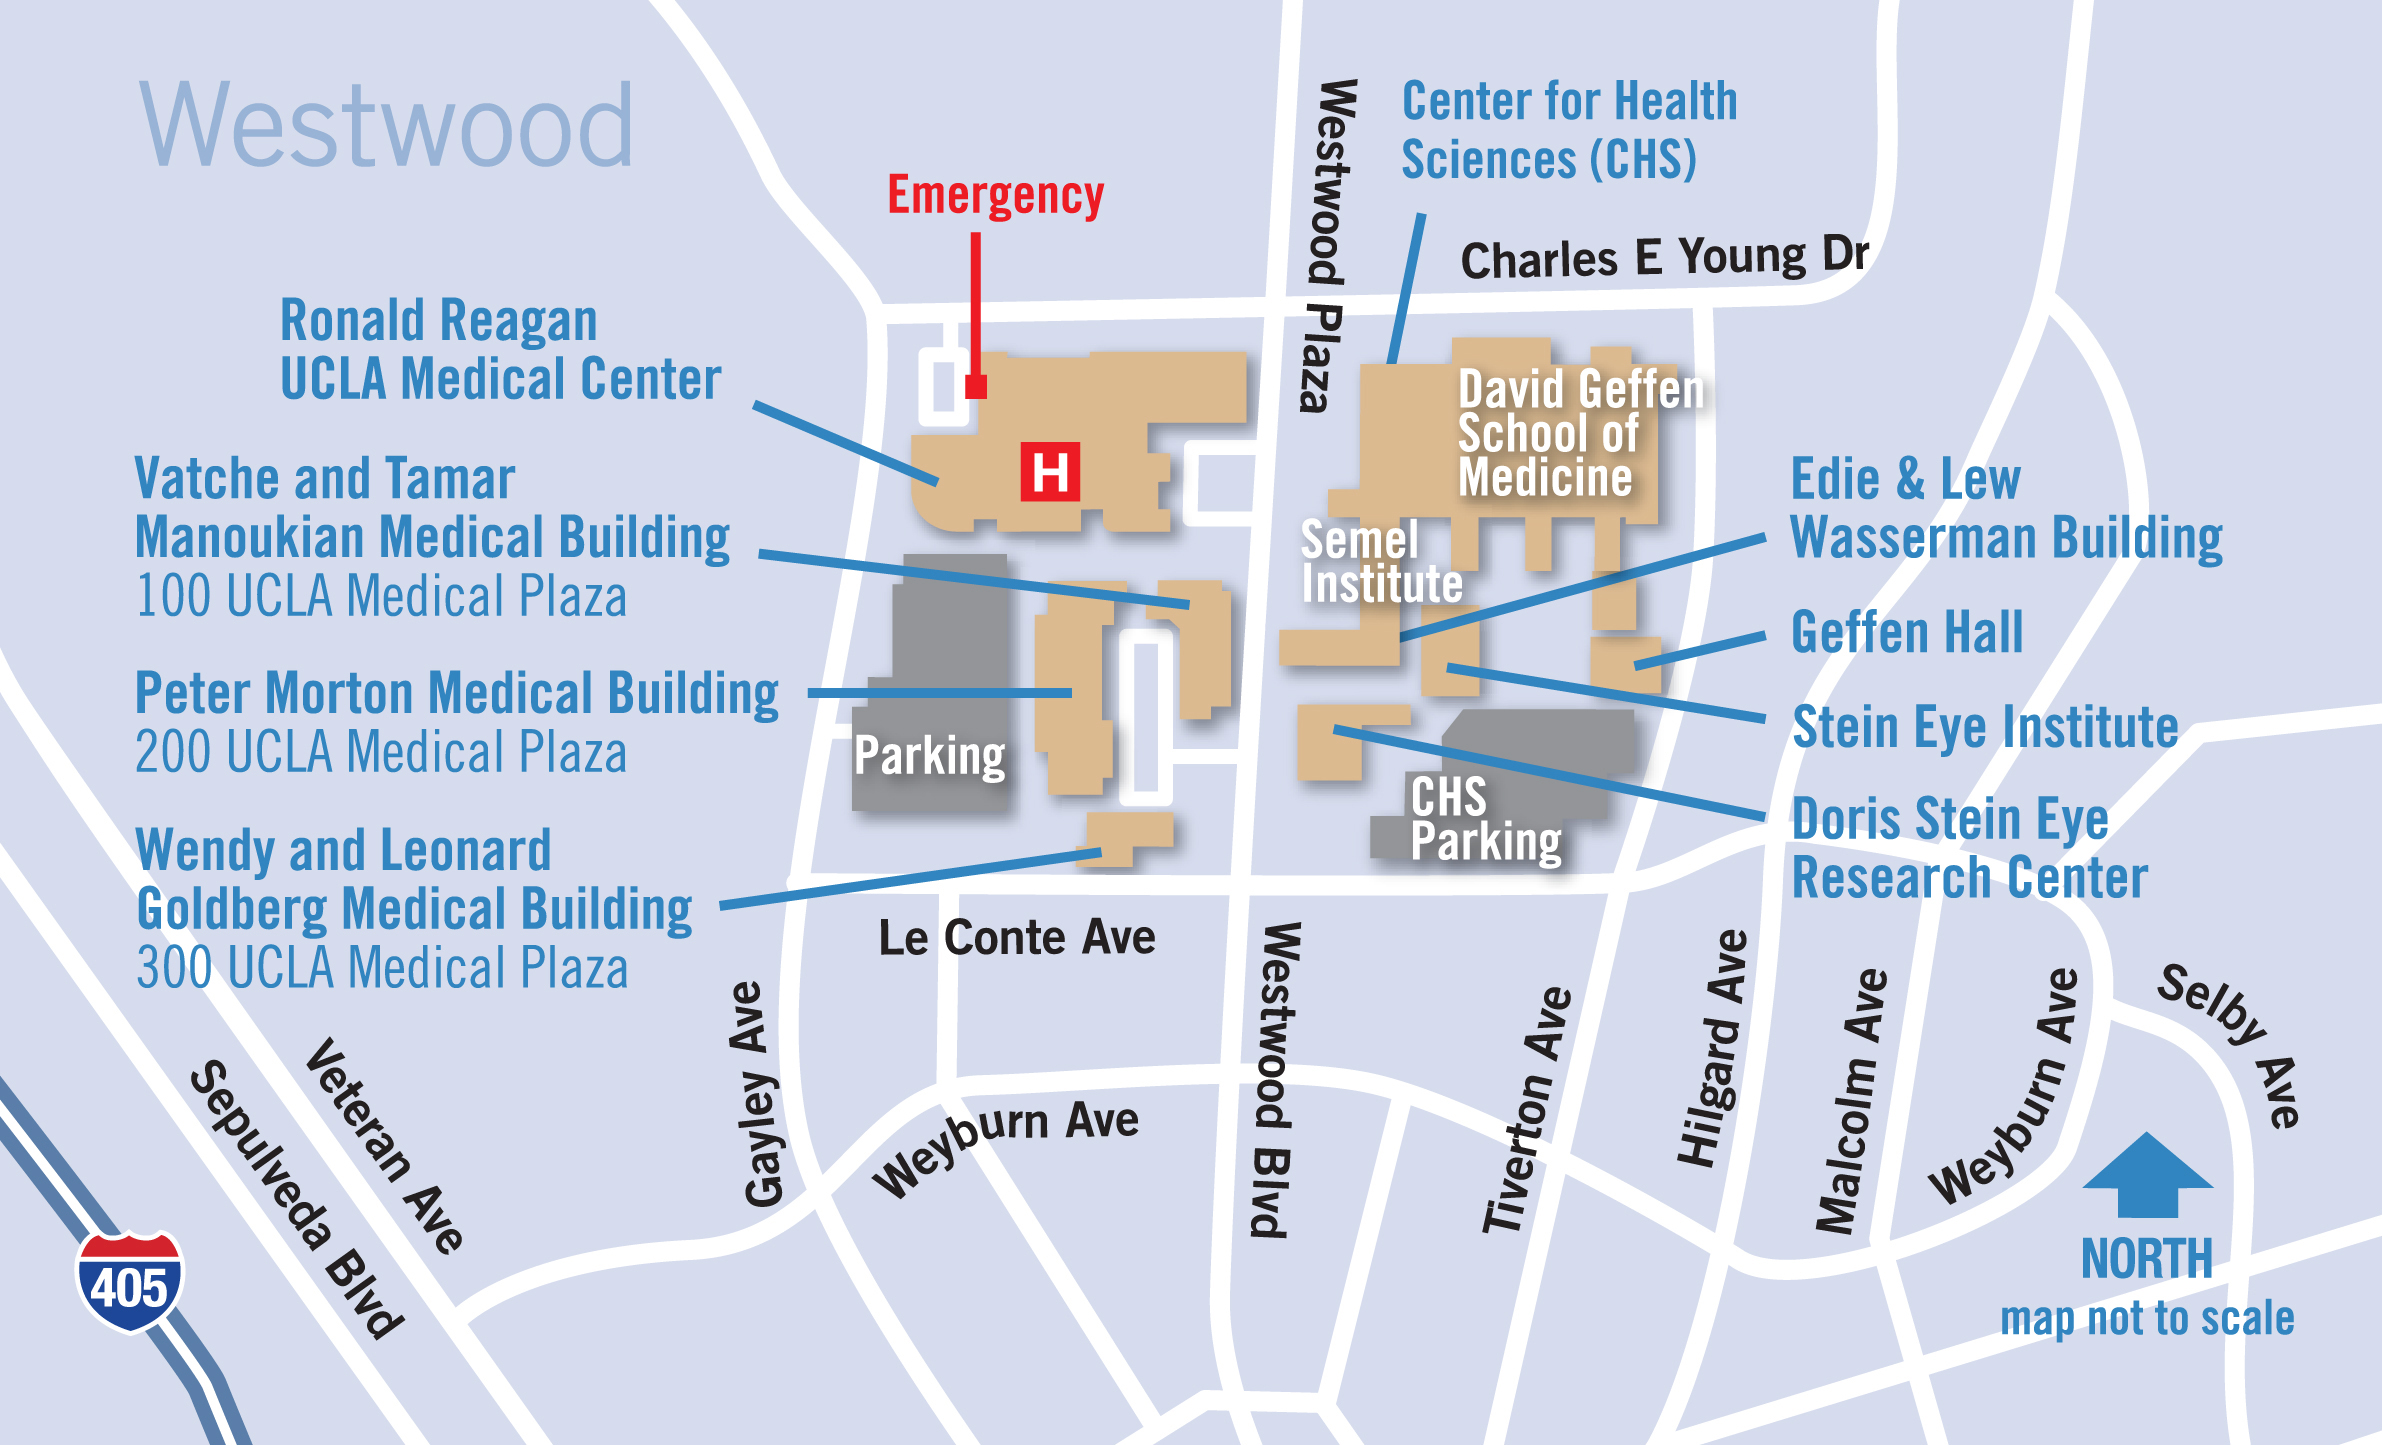 UCLA Medical Plaza Maps and Directions | UCLA Health on ucla mascot, ucla direction map, westwood map, ucla seal, ucla california map, ucla parking lot map, ucla tuition, ucla map pdf, ucla bruins, ucla housing, ucla map and area, campbell hall ucla map, ucla logo, ucla address, ucla residence hall map, ucla pool, ucla school map,